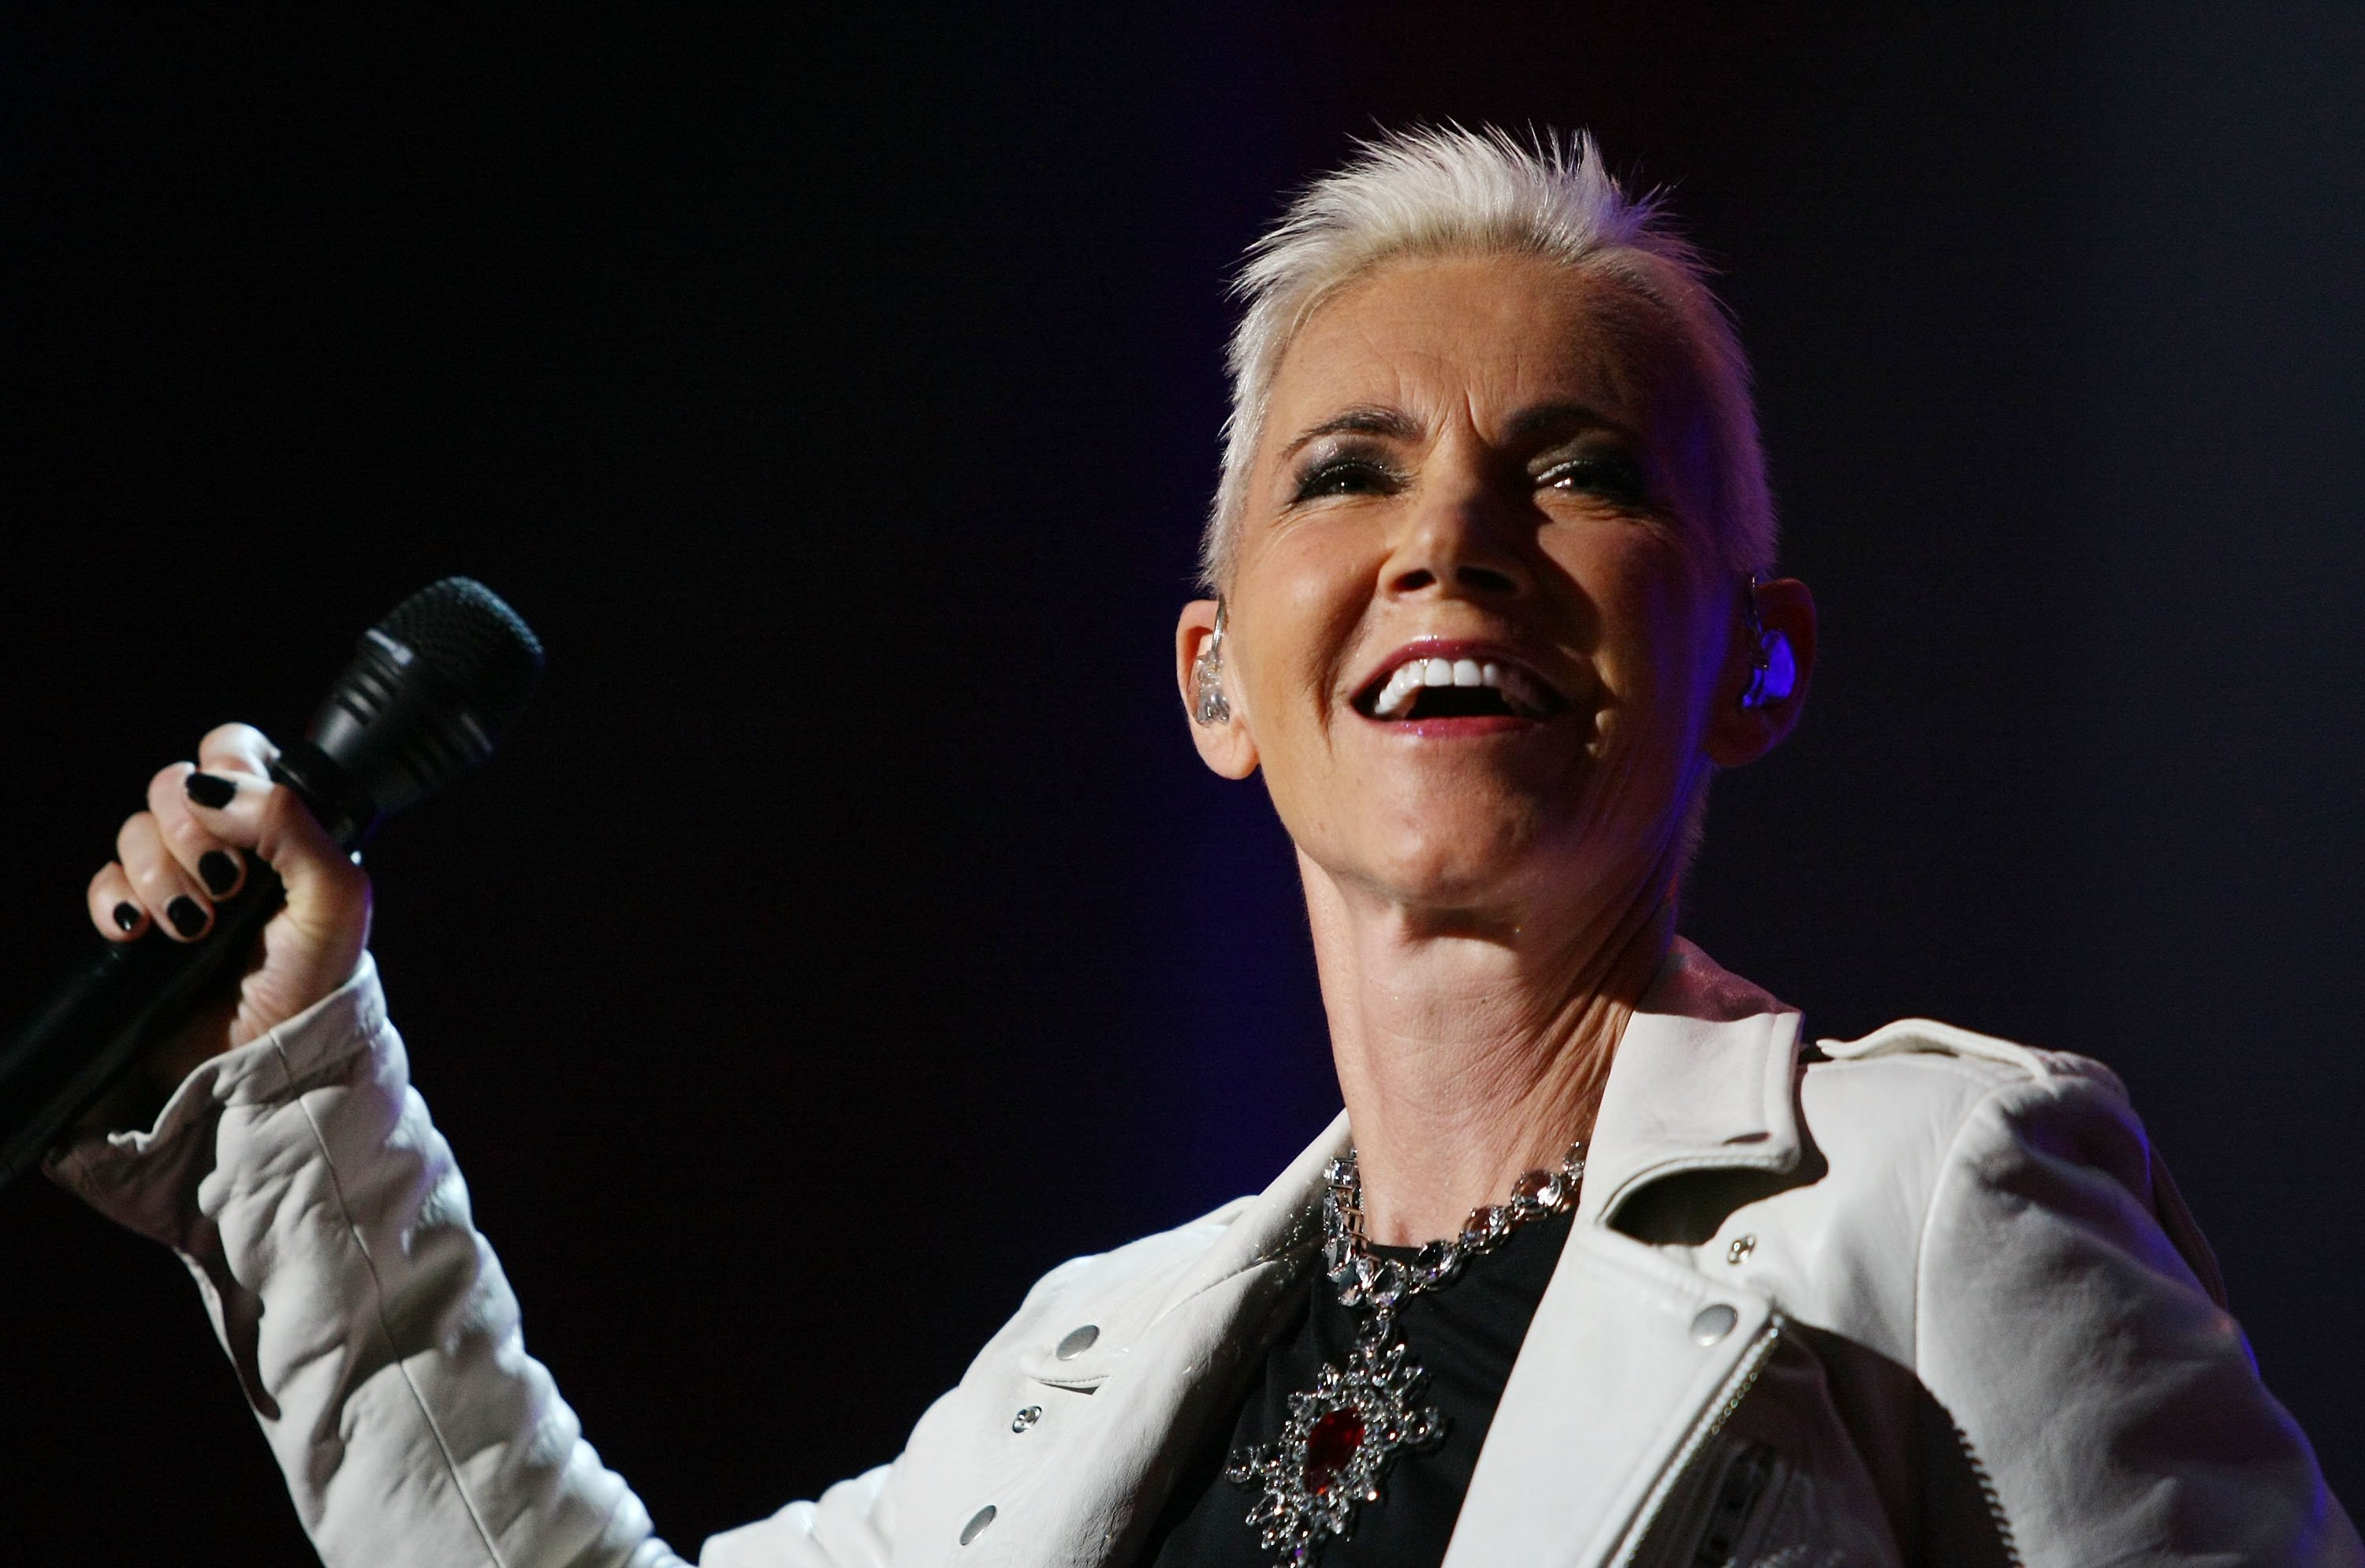 Marie Fredriksson of Roxette performs on stage during their concert at Sydney Entertainment Centre on February 16, 2012 | Photo: GettyImages